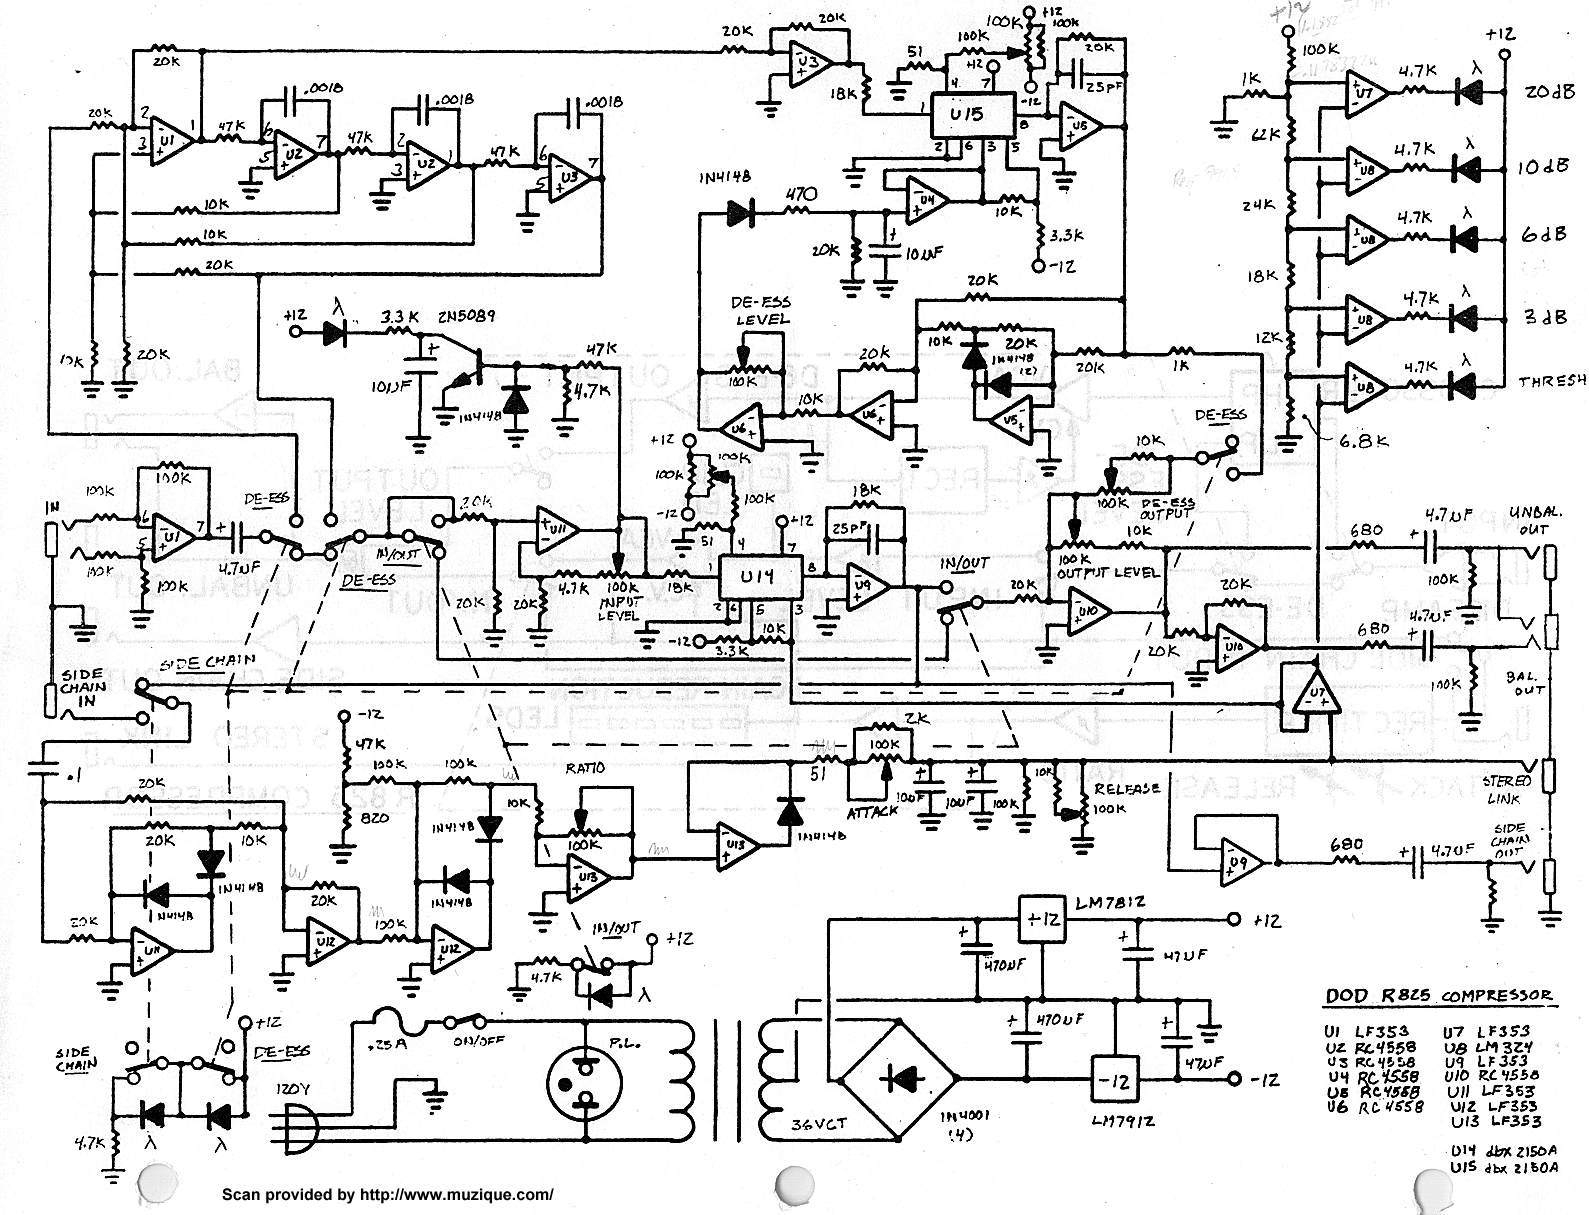 king of tone circuit schematic  king  free engine image